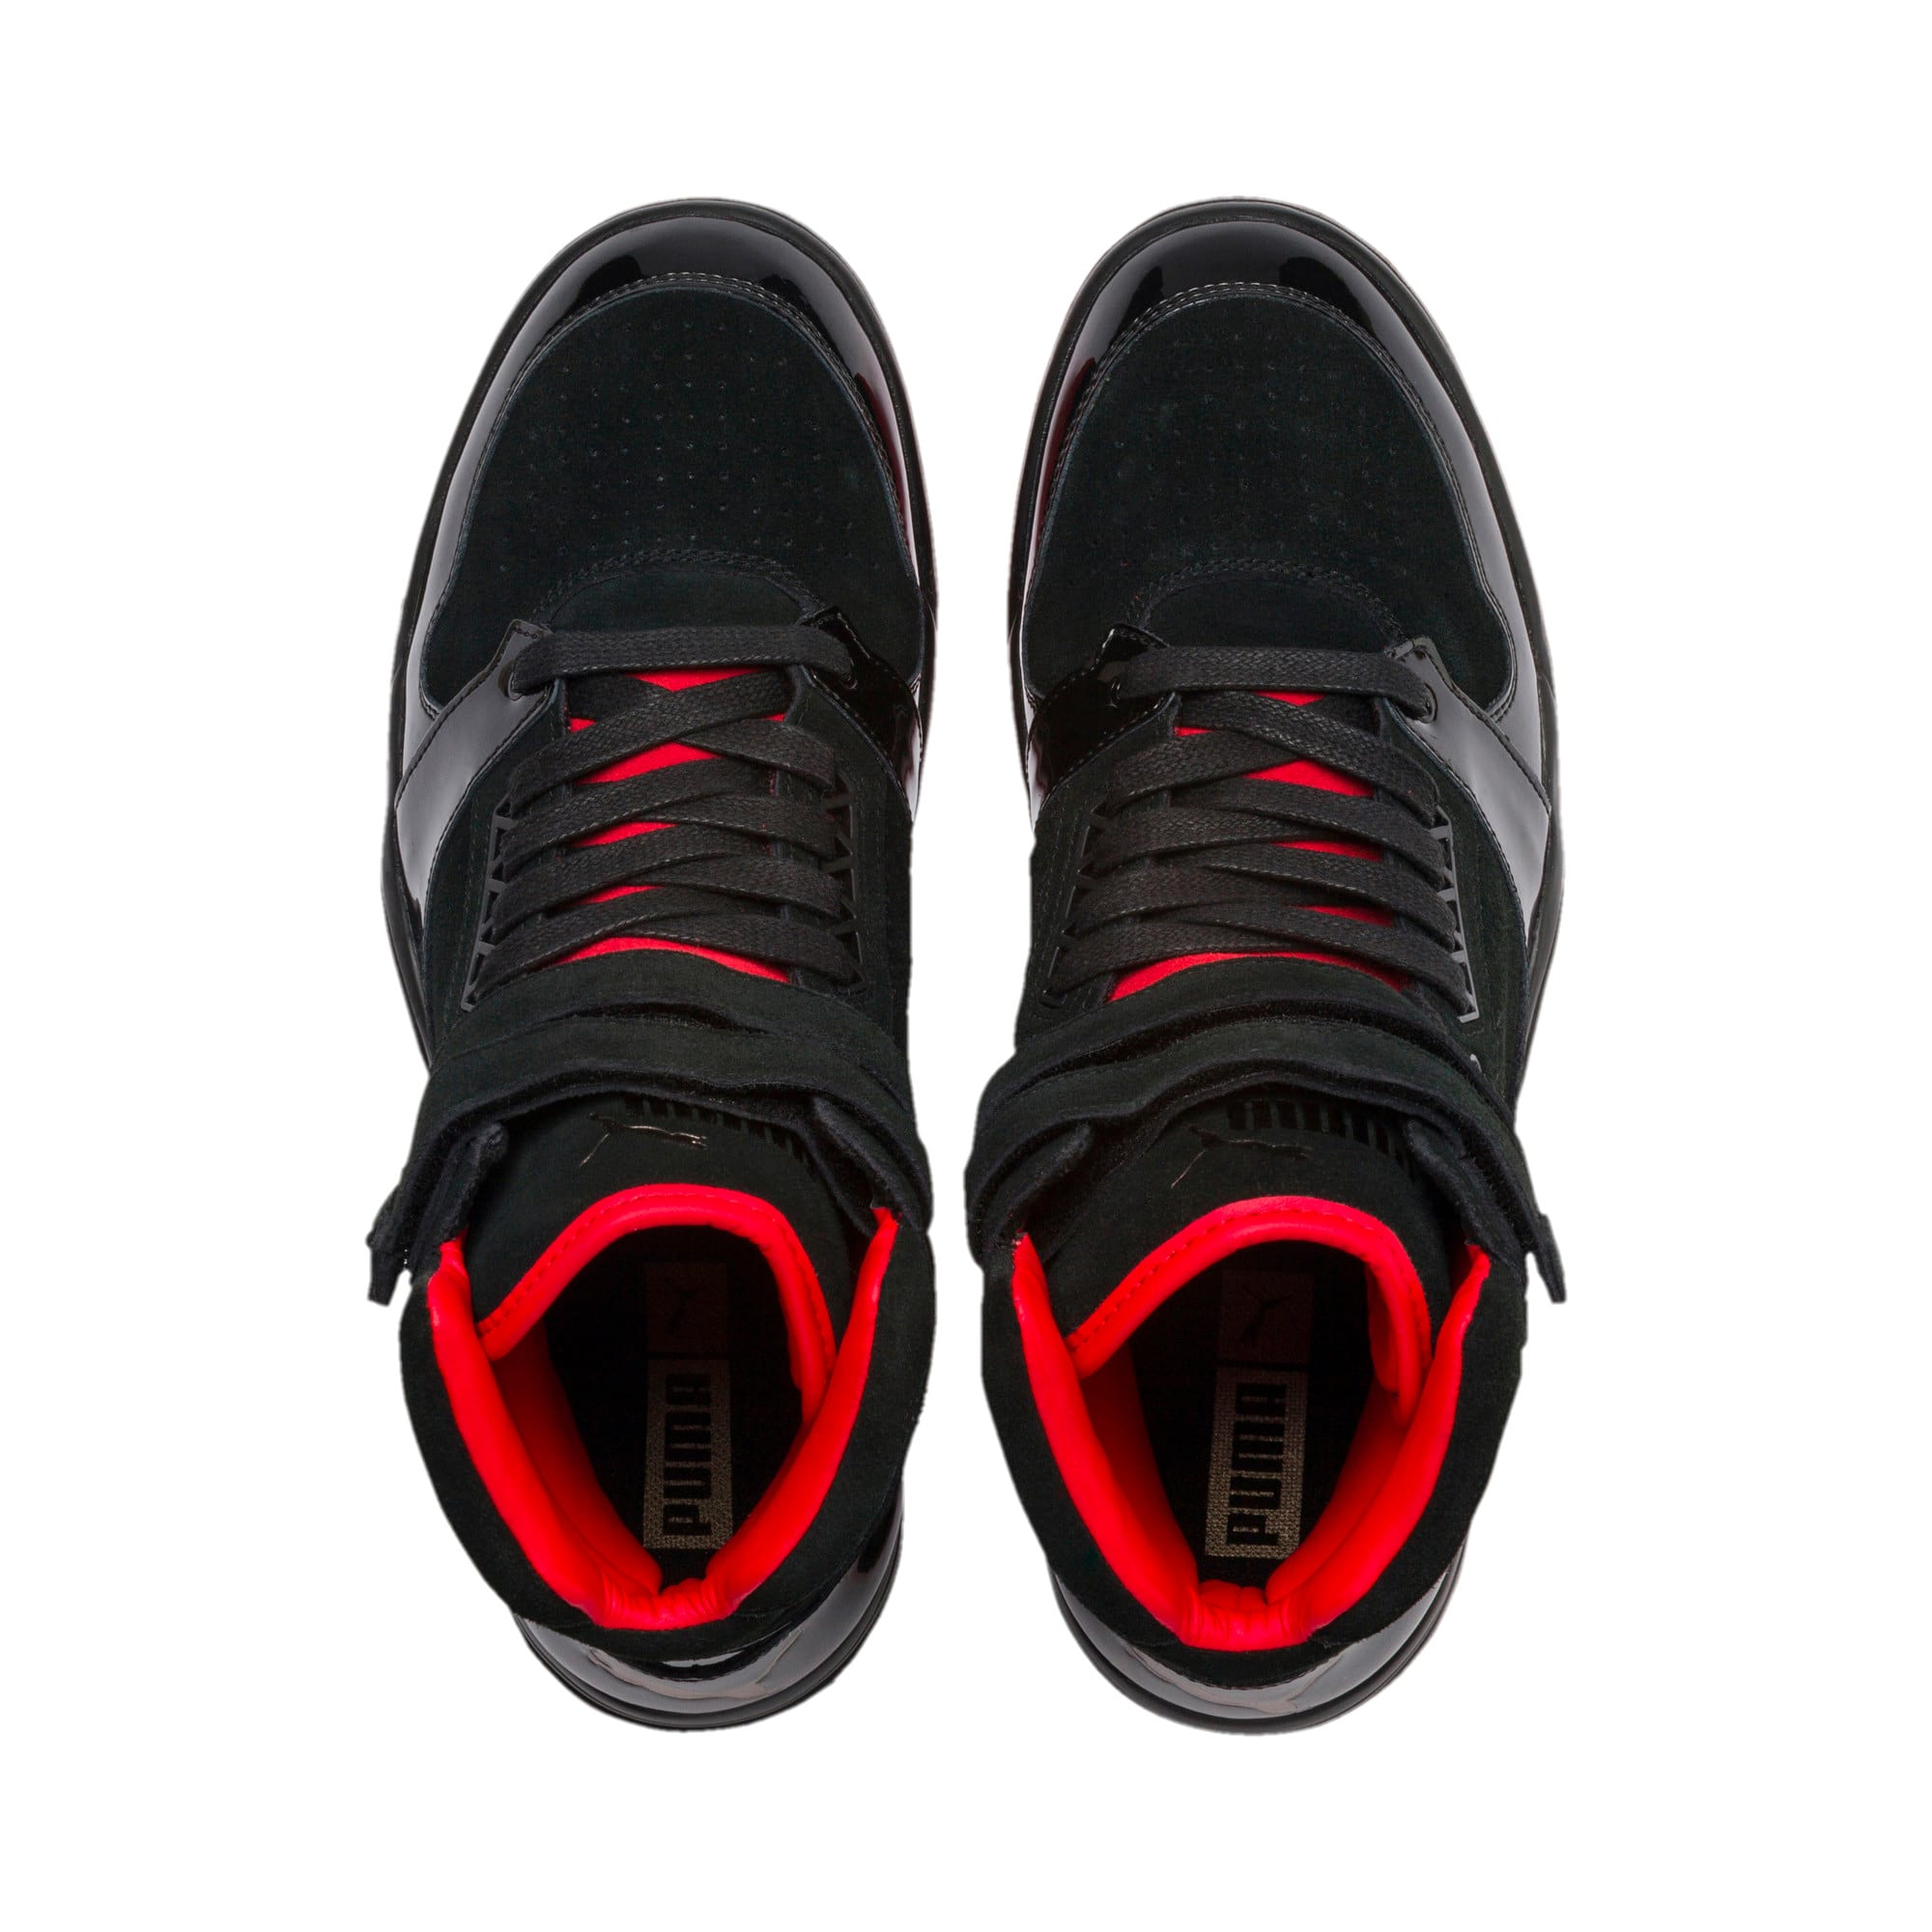 Thumbnail 8 of Palace Guard Red Carpet Mid-Cut Basketball Shoes, Puma Black-Risk Red-Bronze, medium-IND